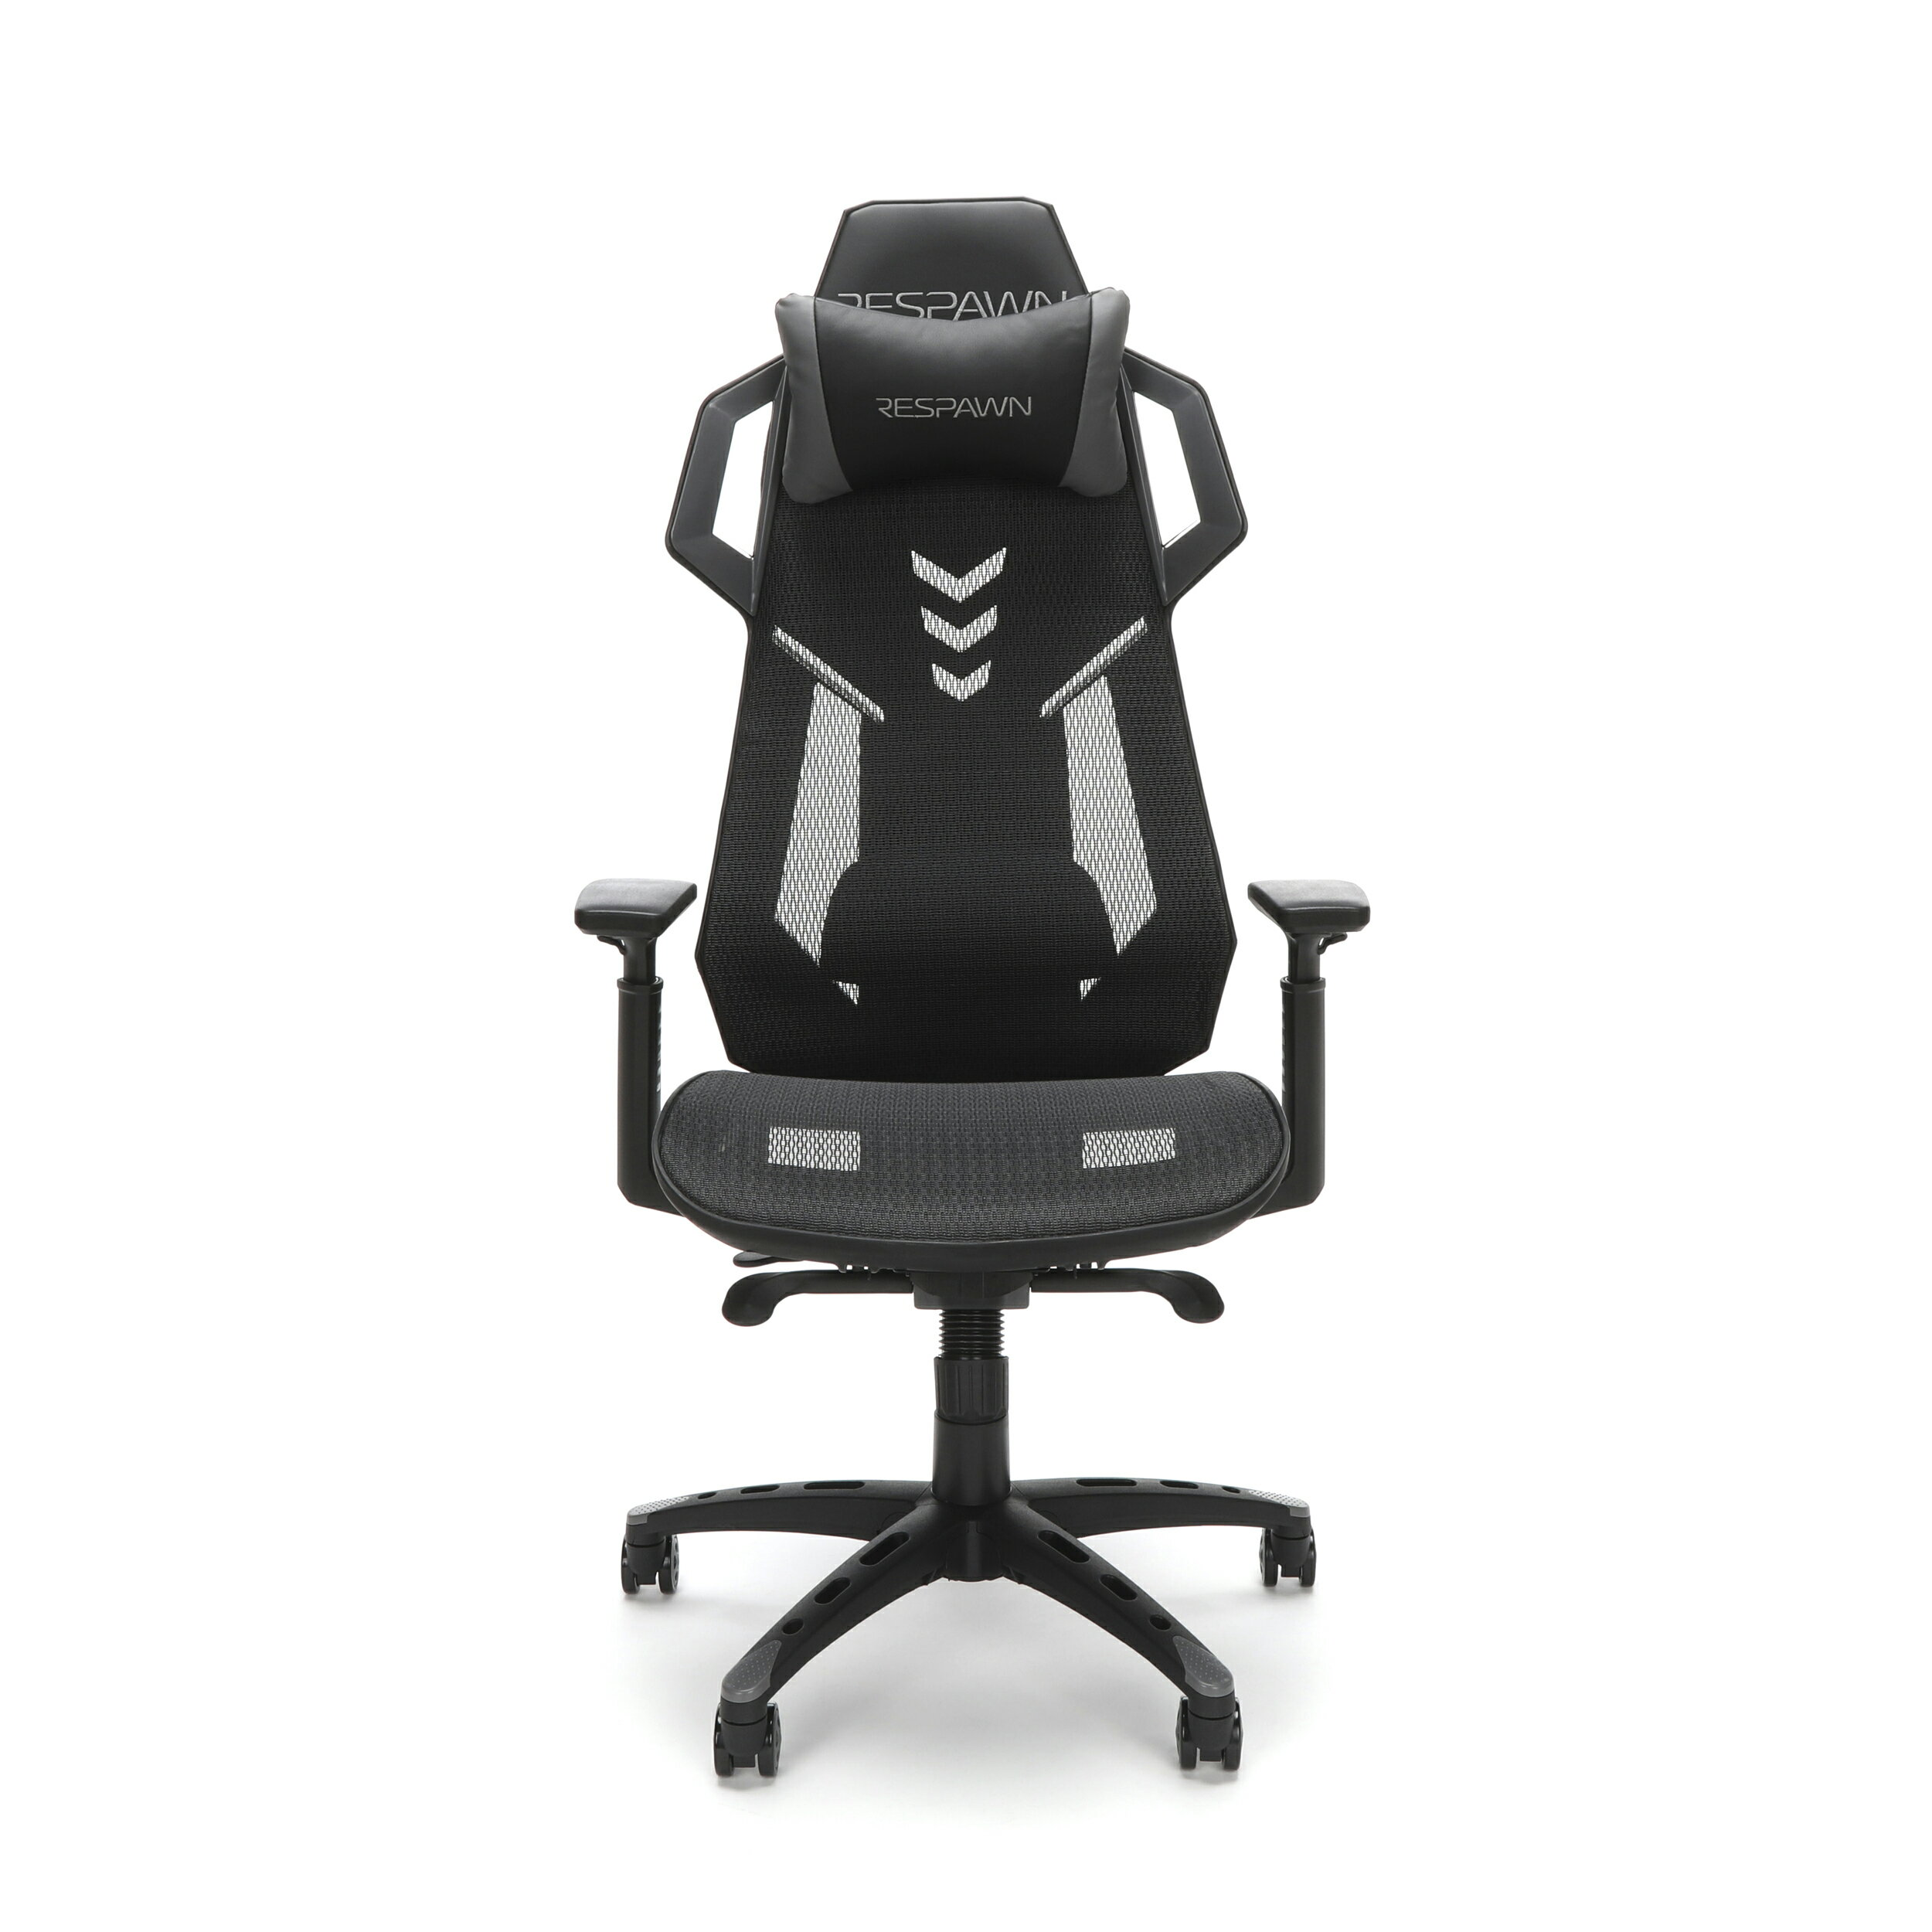 RESPAWN-300 Racing Style Gaming Chair - Ergonomic Performance All Mesh Chair, Office or Gaming Chair (RSP-300) 5